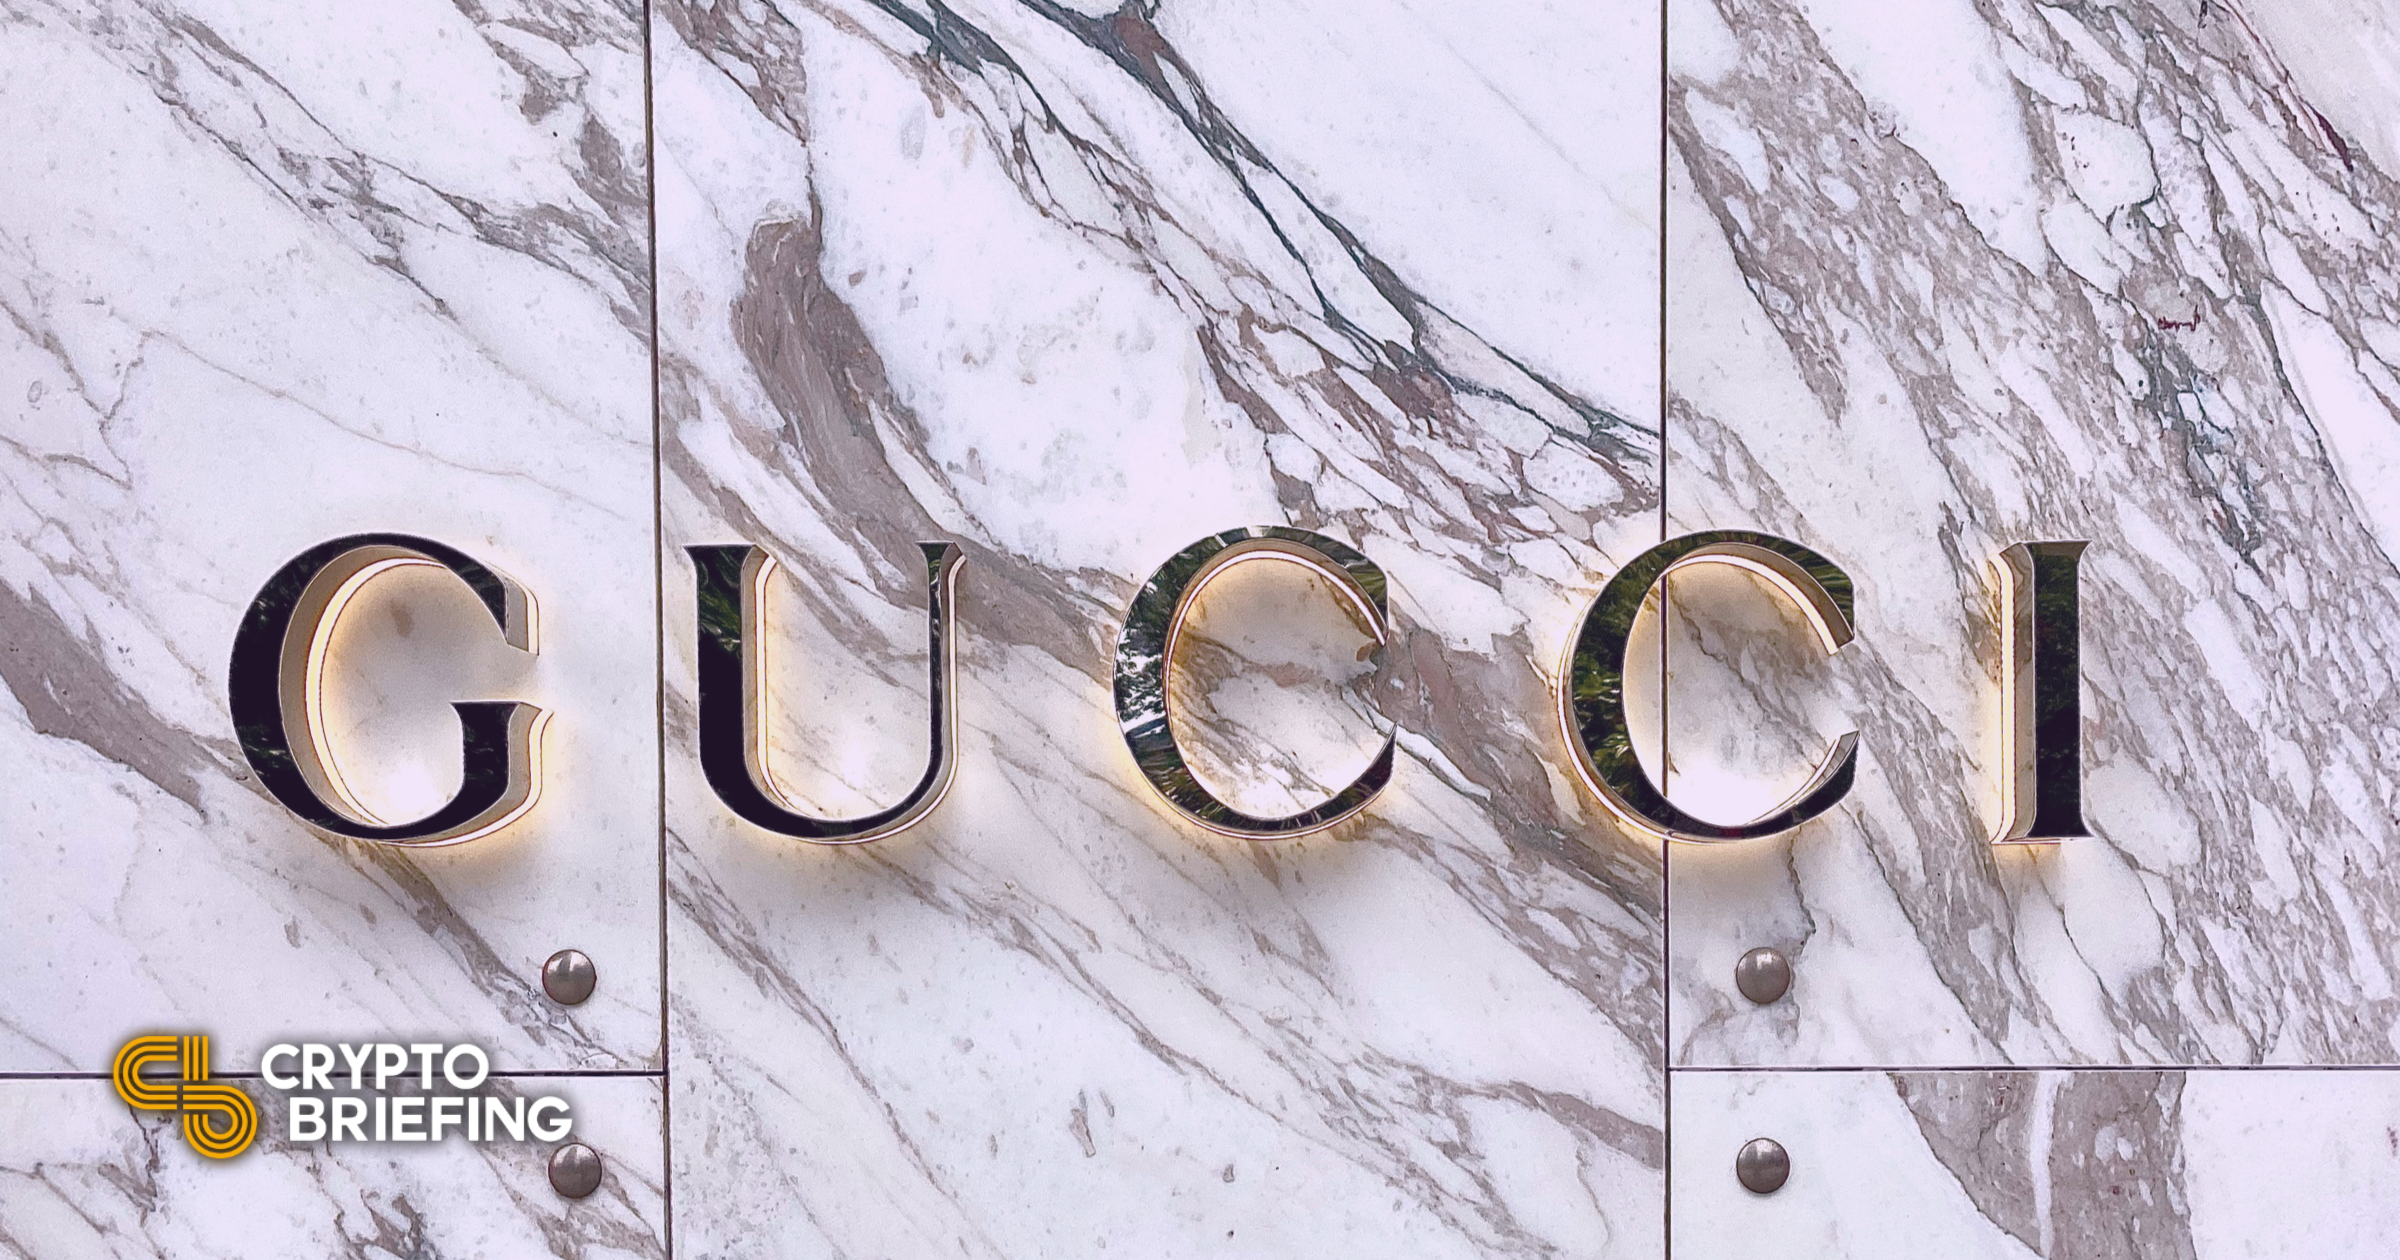 Luxury Brand Gucci Reportedly Eyeing NFT Space